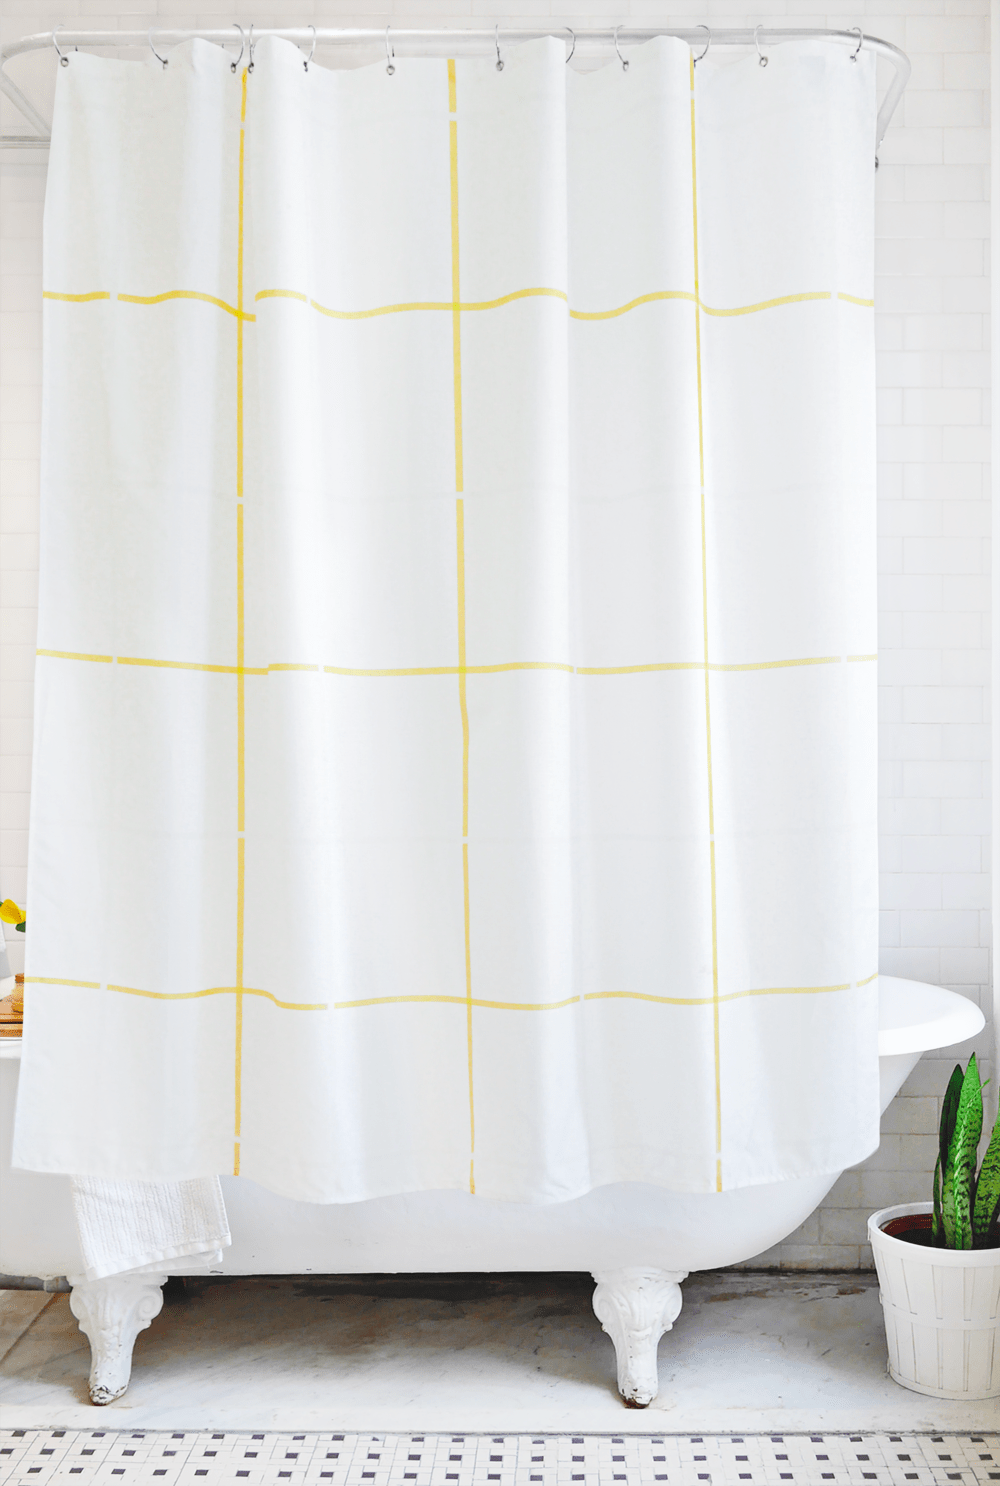 grid: yellow and white - Bathage